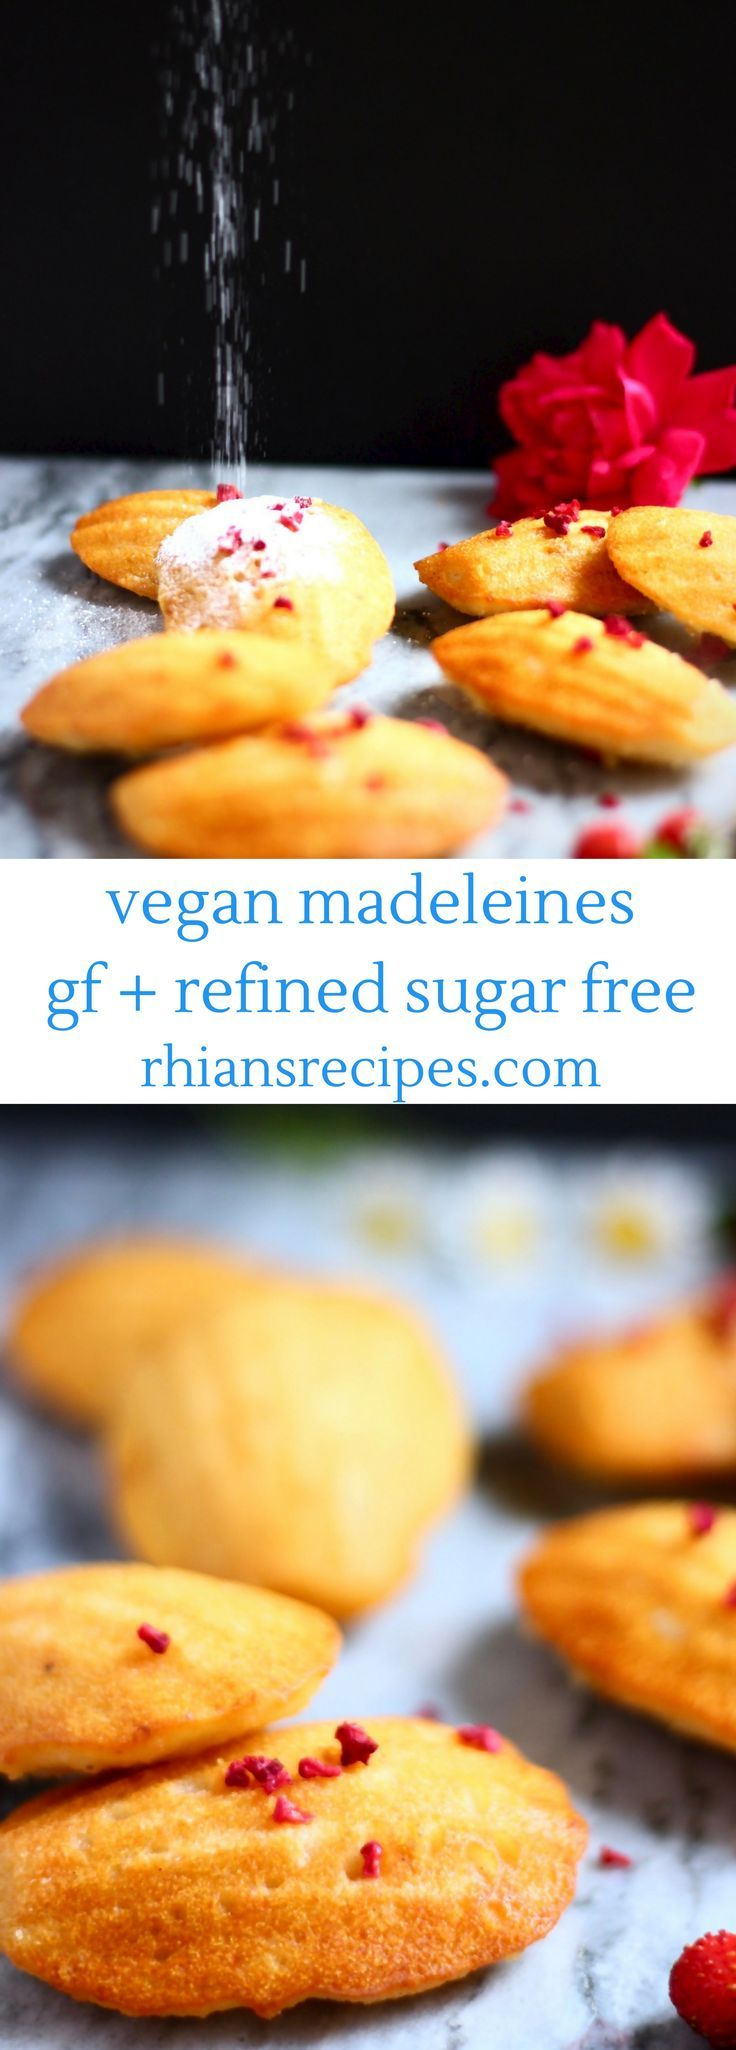 These Gluten-Free Vegan Madeleines are so easy to make and just as delicious as the traditional version! Refined sugar free.